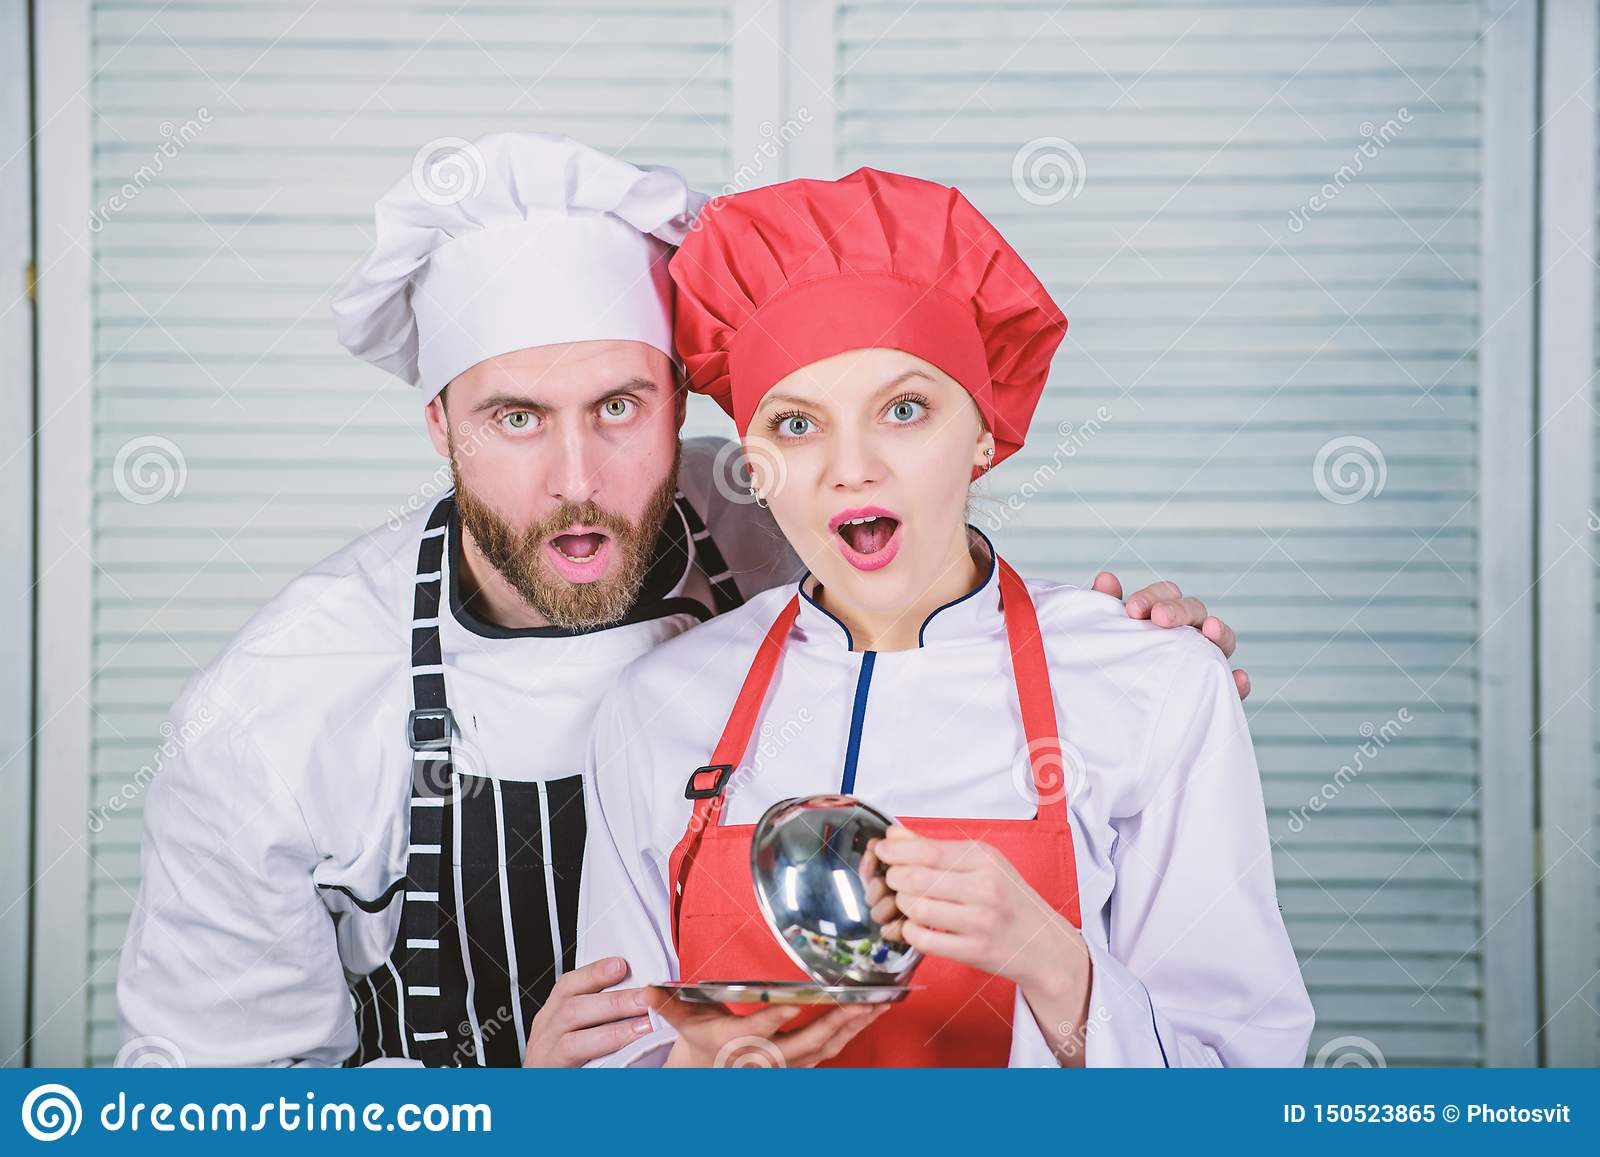 Secret ingredient by recipe. cook uniform. couple in love with perfect food. Menu planning. culinary cuisine. Family